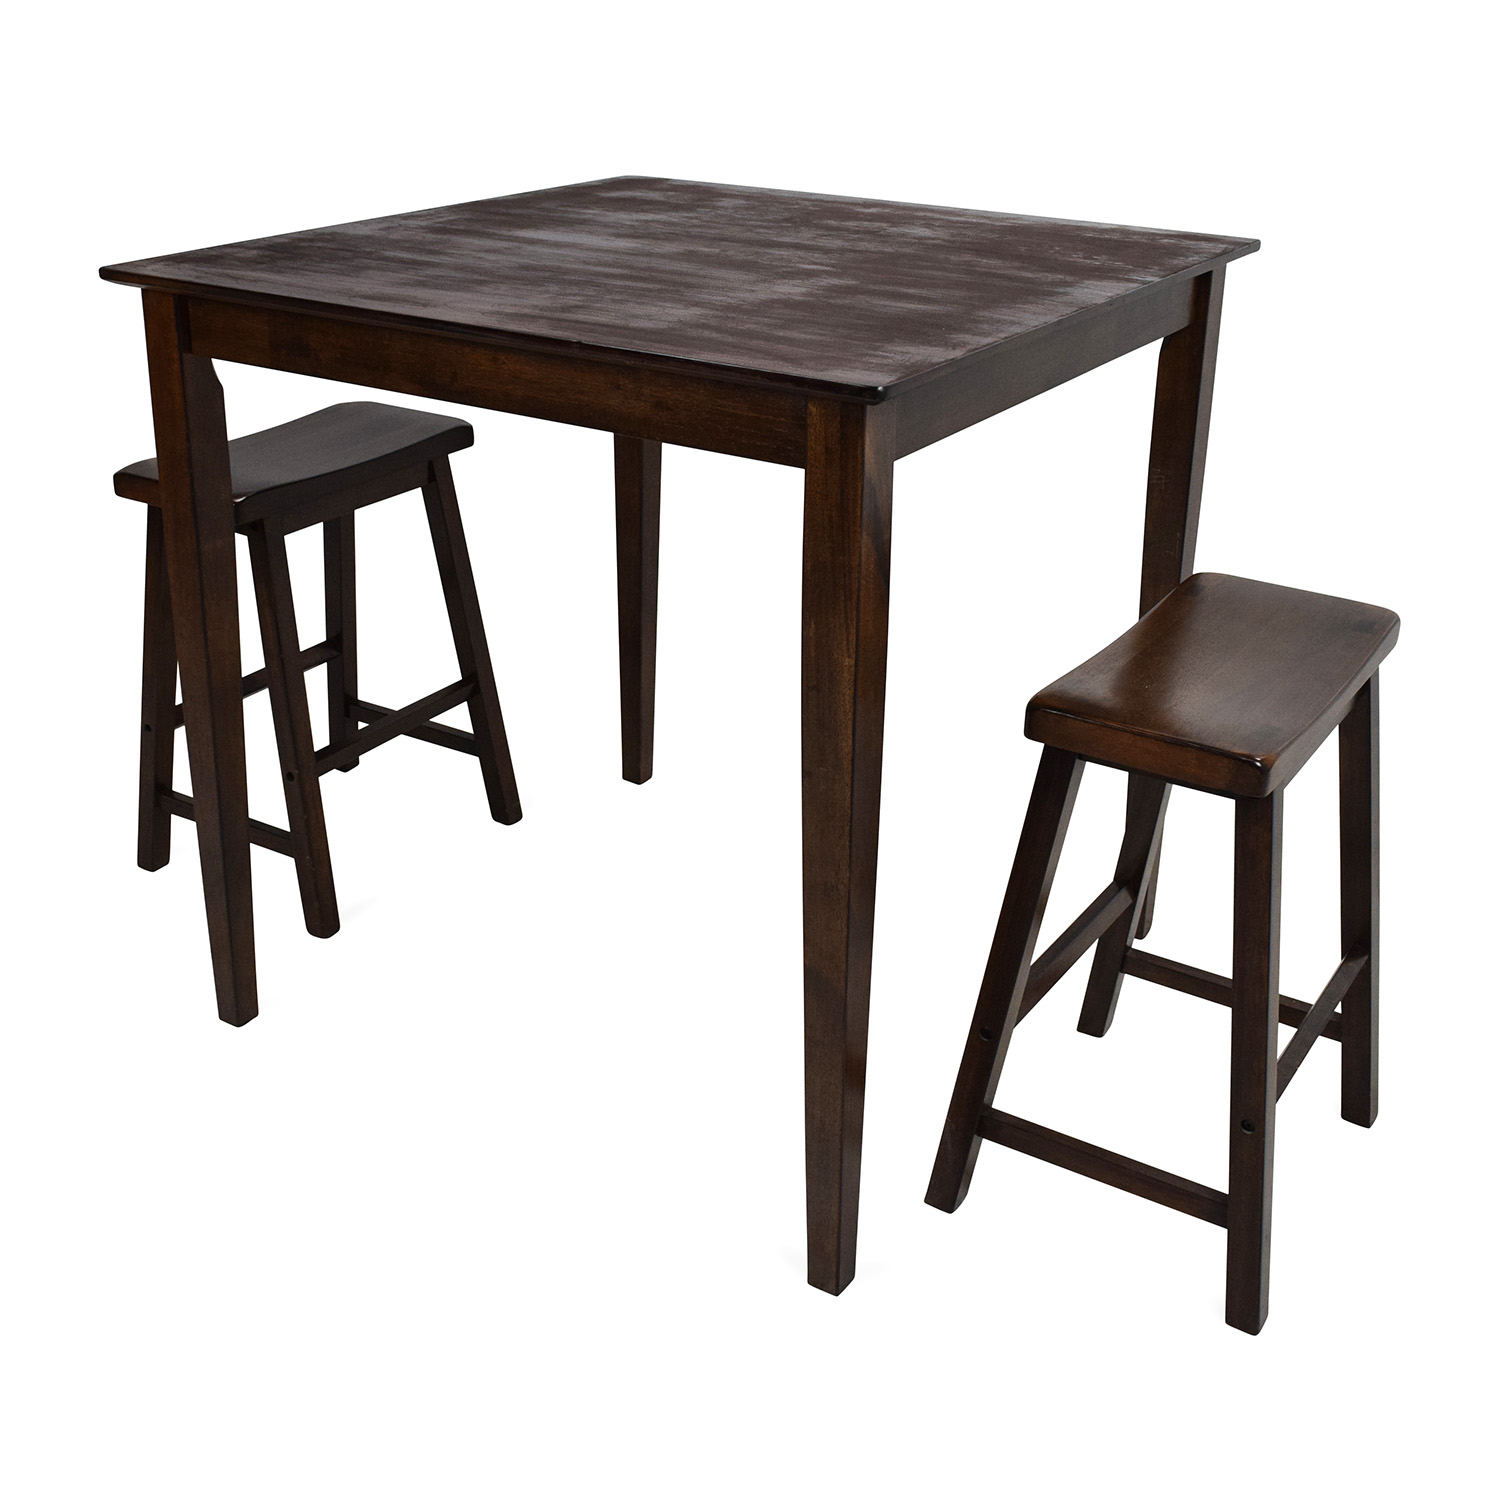 81% OFF Ashley Furniture Ashley Furniture Kitchen Table